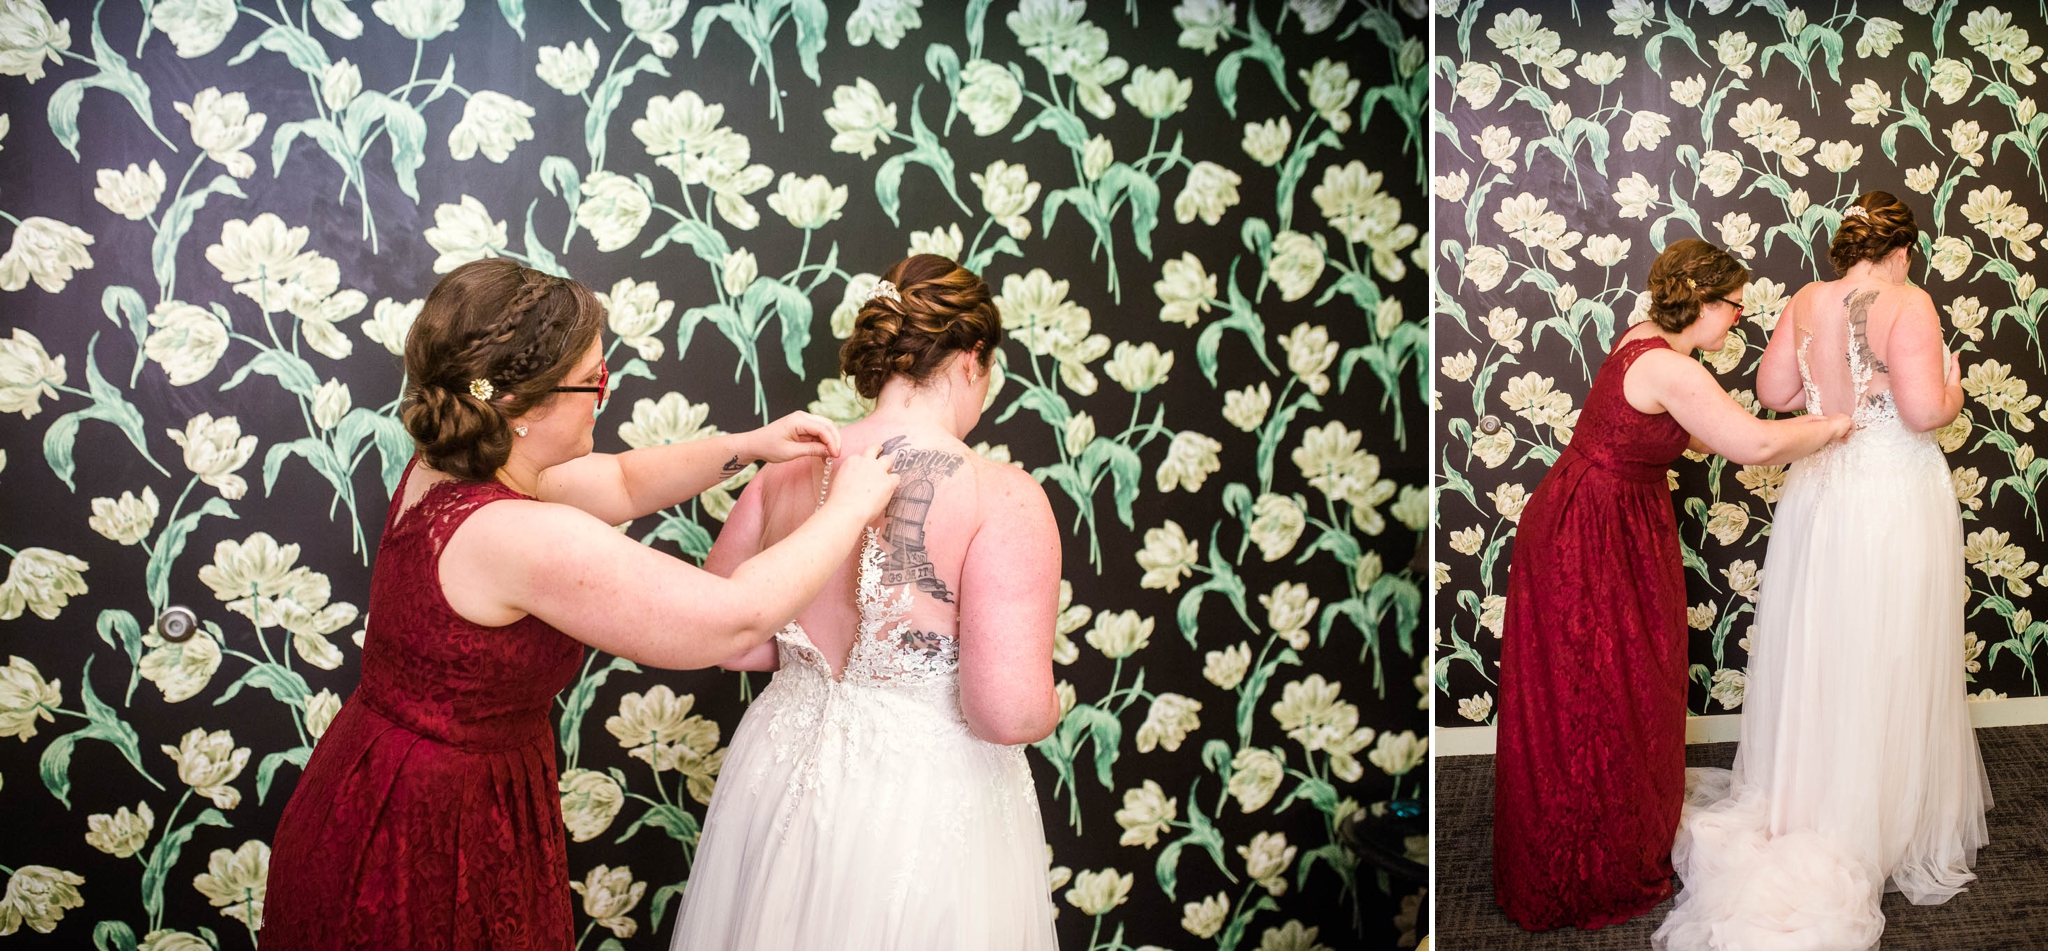 Bride getting into her Dress - Meredith + Jason - The Crest Center and Pavilion in Asheville, NC - Raleigh Wedding Photographer